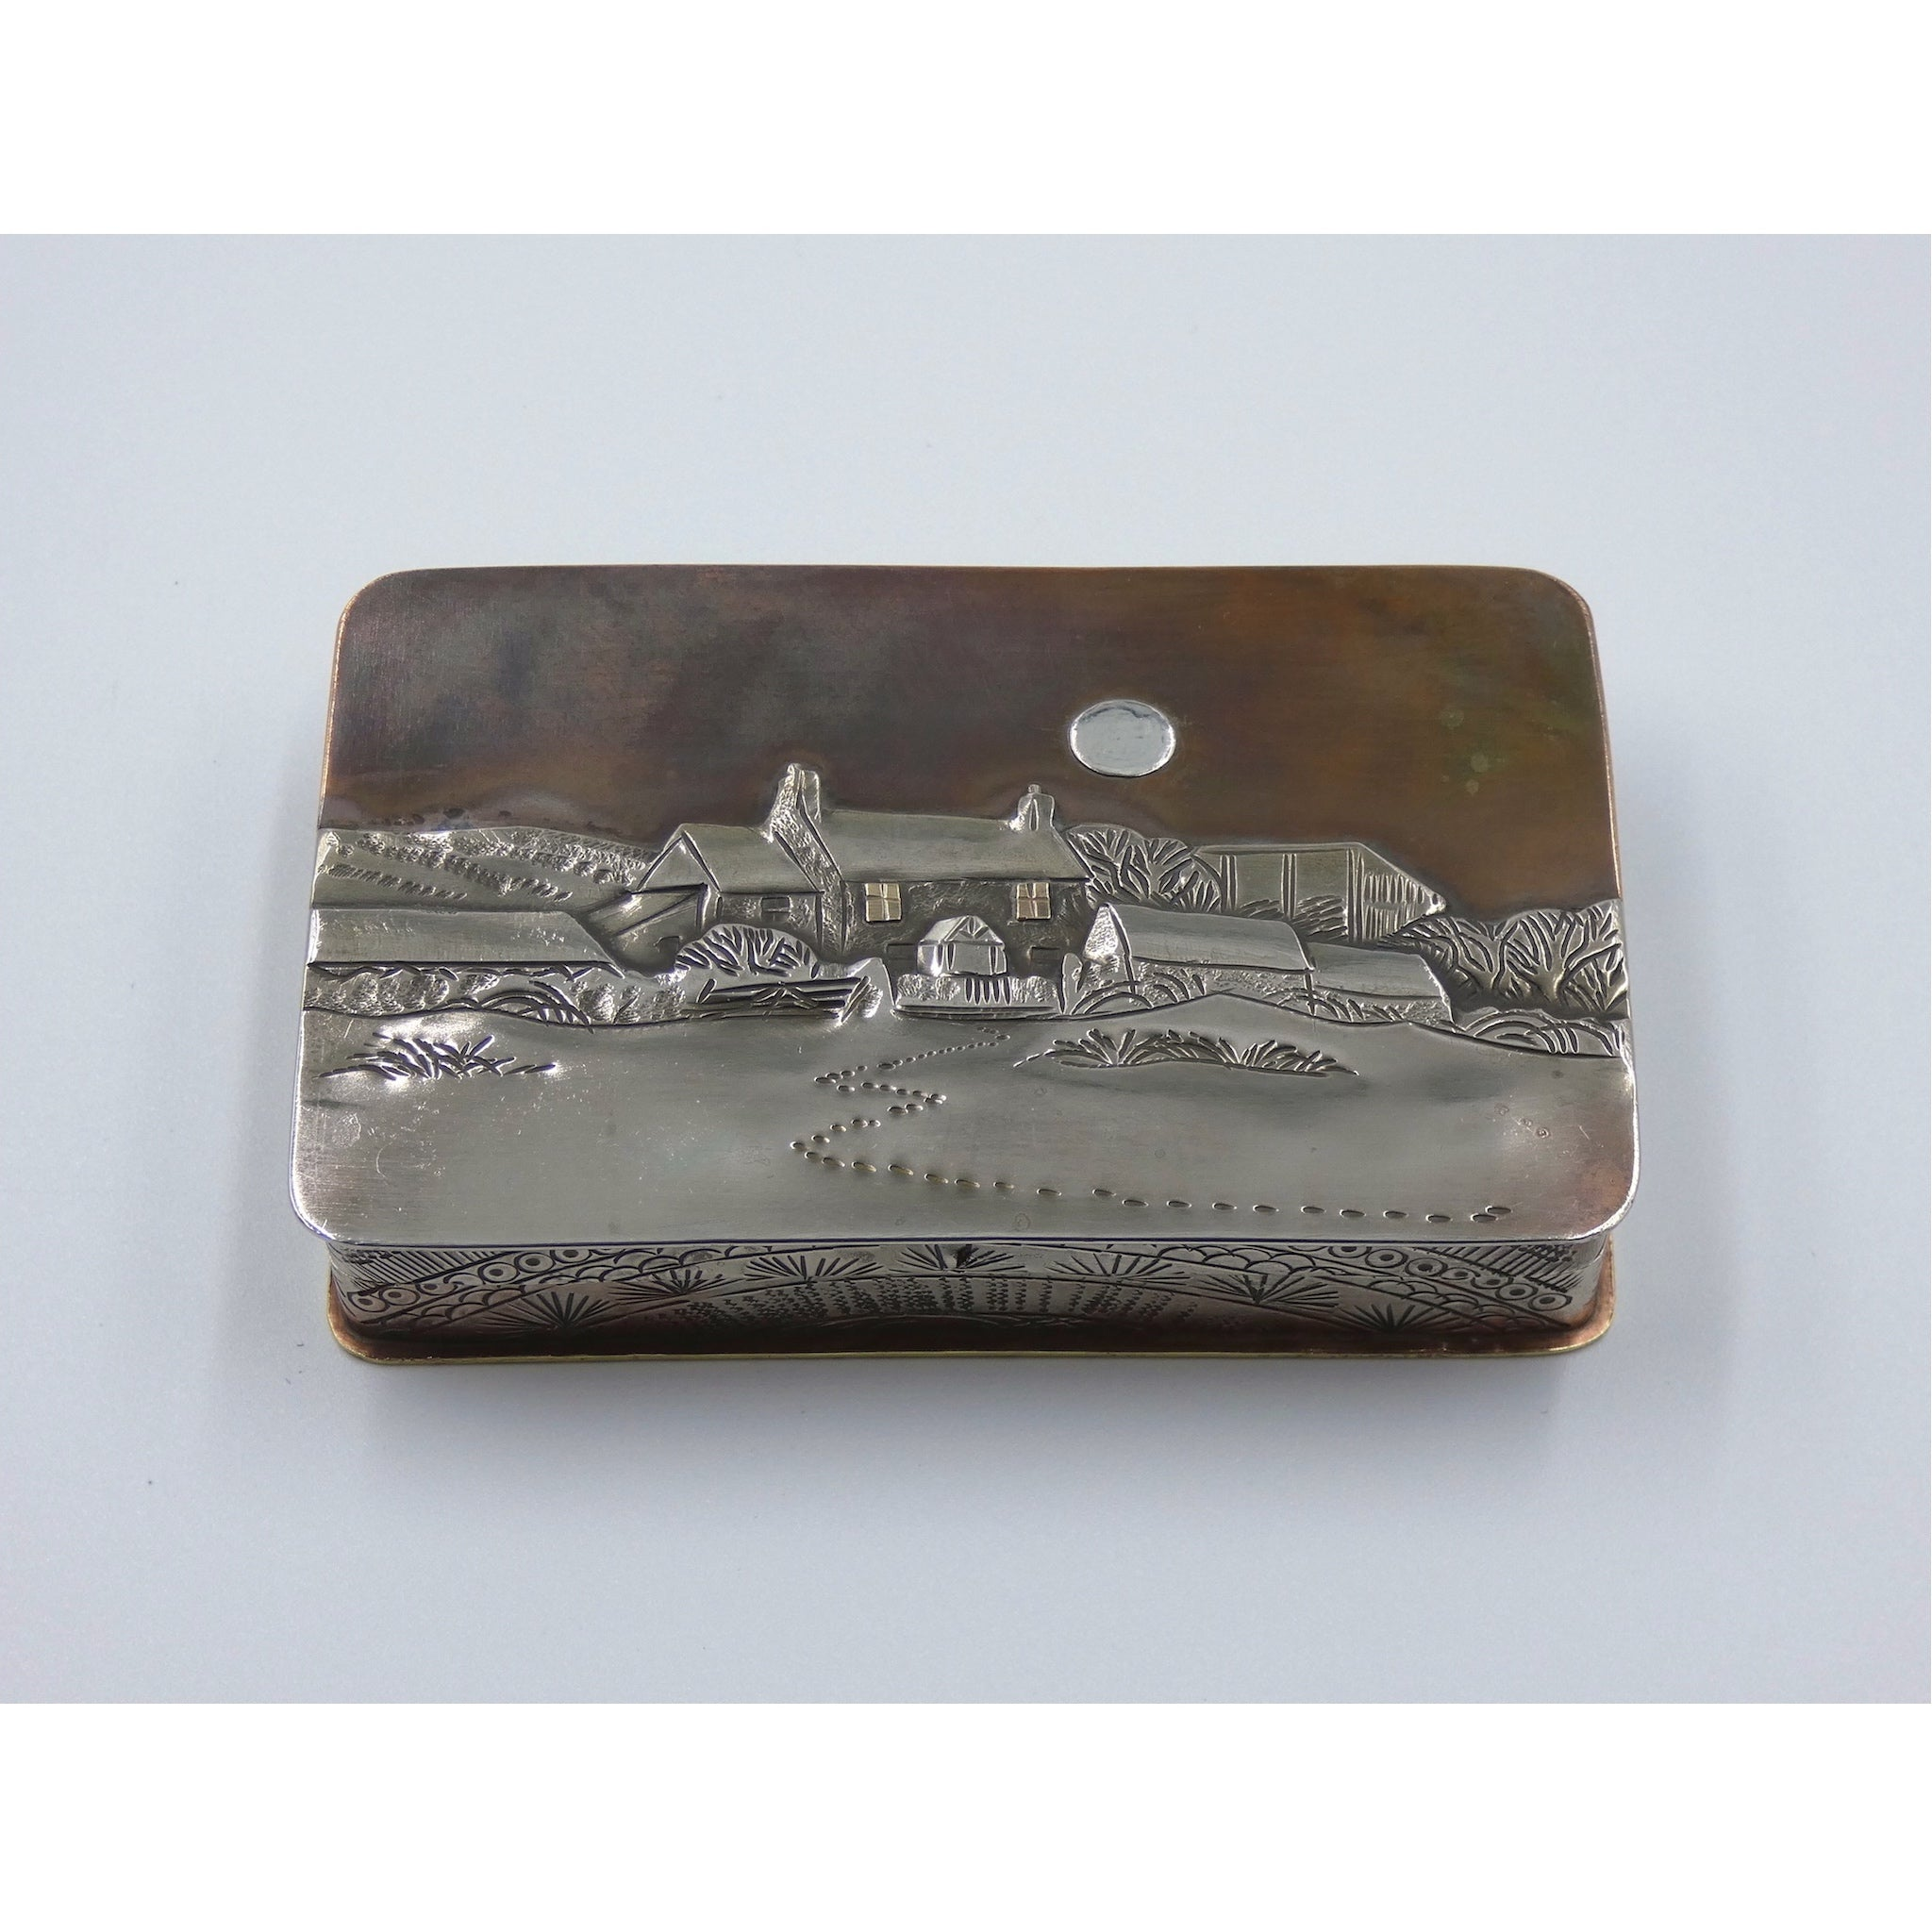 Metal hinged box depicting a cottage nestled in a snow covered landscape by artist Cornelius Van Dop